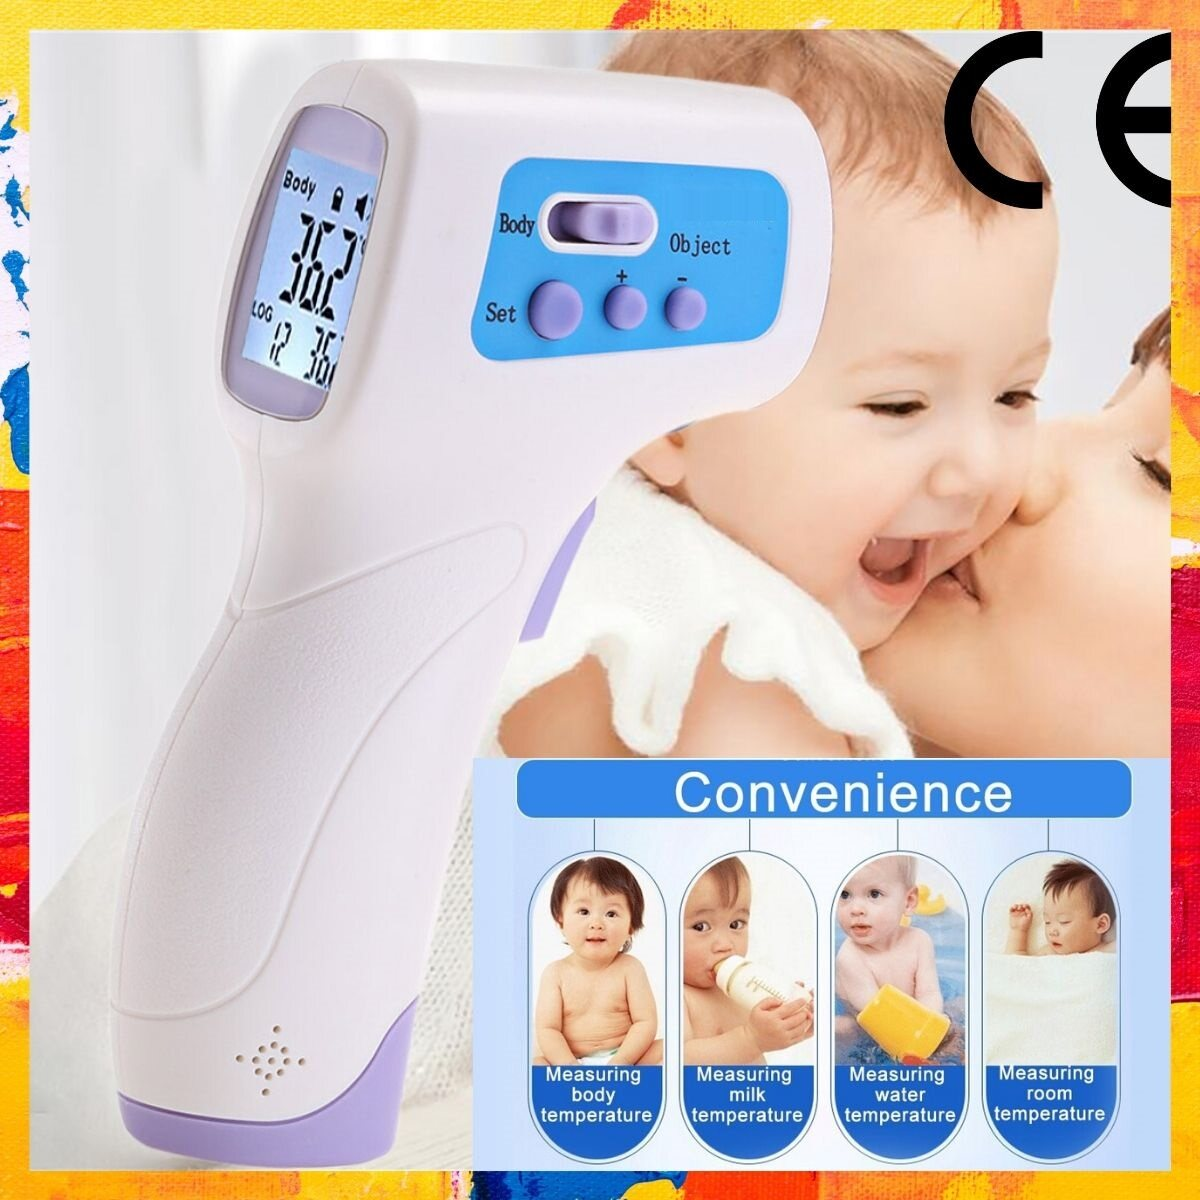 Küchen Thermometer Test Elektronik & Messtechnik Handheld Infrared Thermometer Gun Non-contact Temperature Measurement Dm300 Business & Industrie Aacs.in